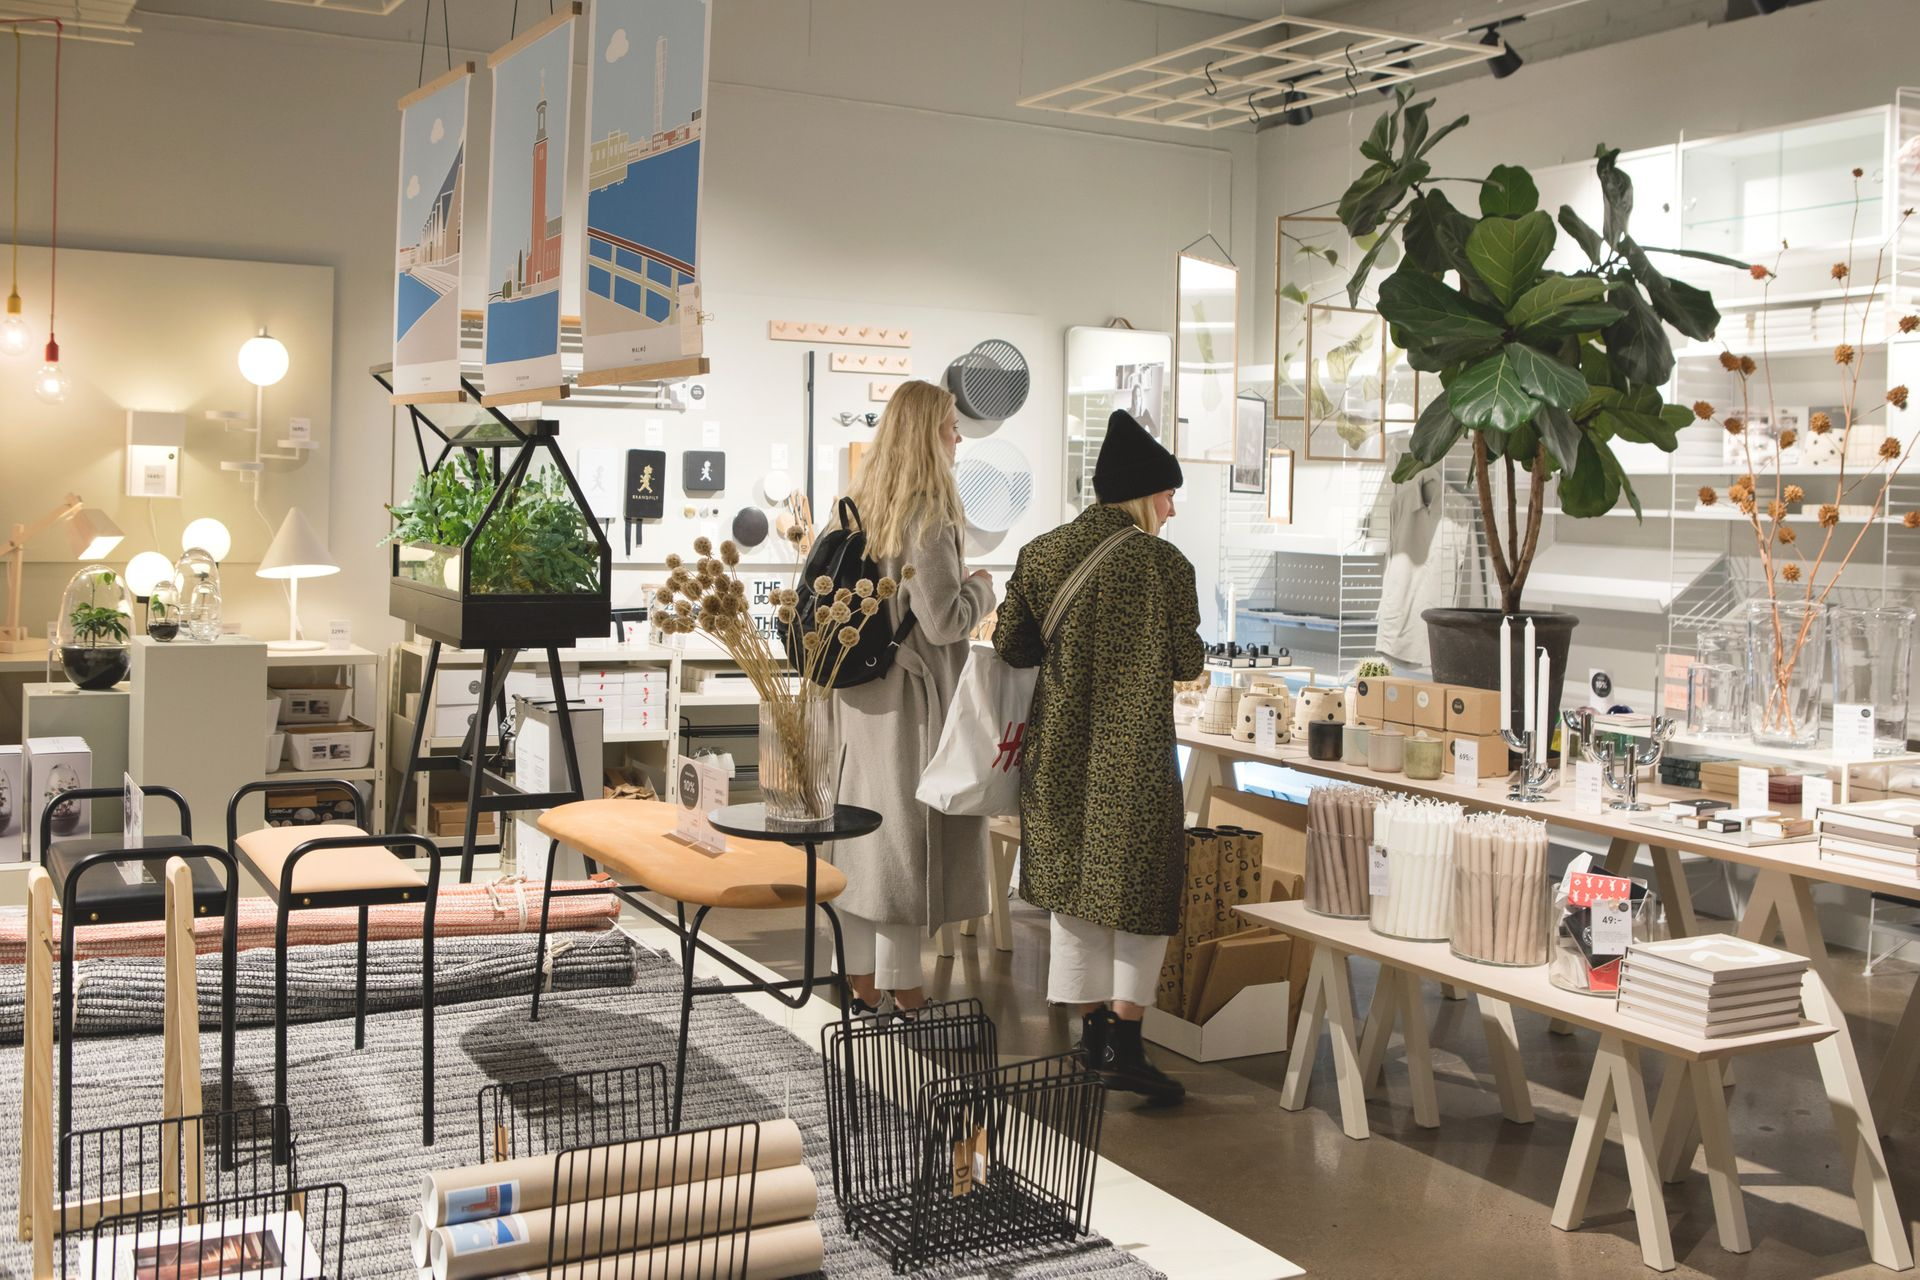 Two women are shopping in an interior design shop with a lot of Scandinavian design items.